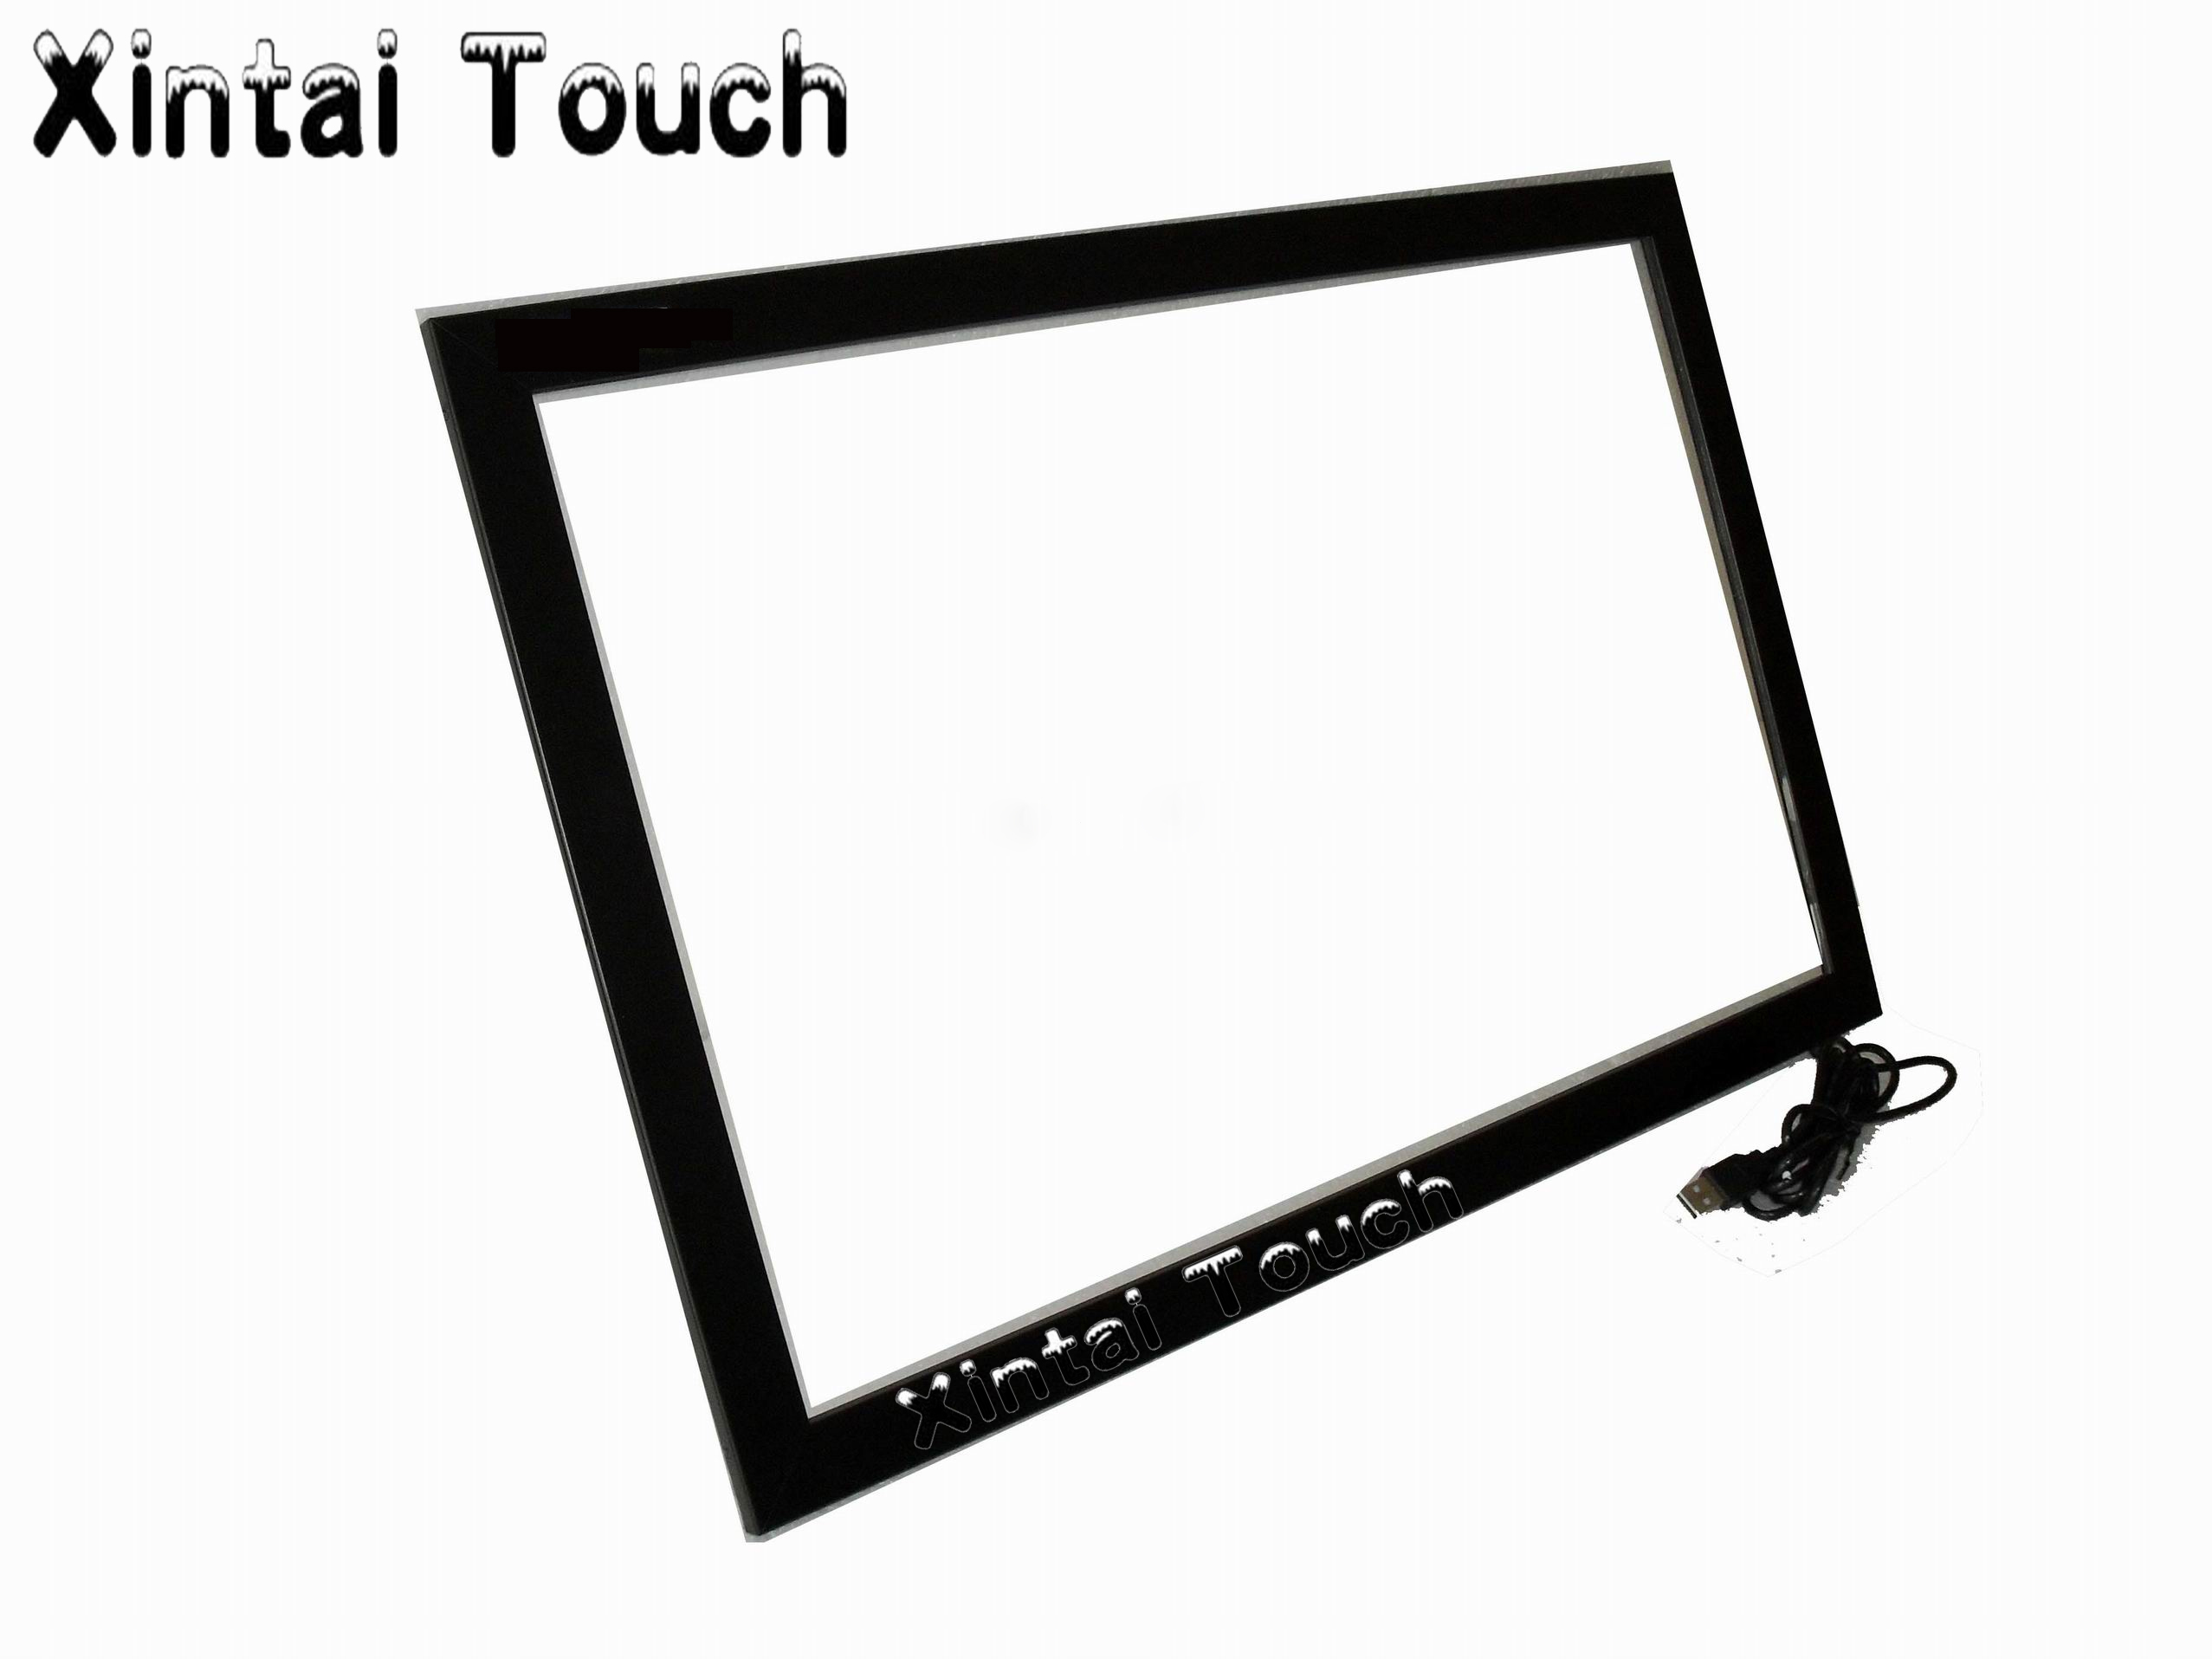 98 inch infrared Multi touch screen,10 touch points IR touch panel frame for smart tv,flat IR touch screen panel